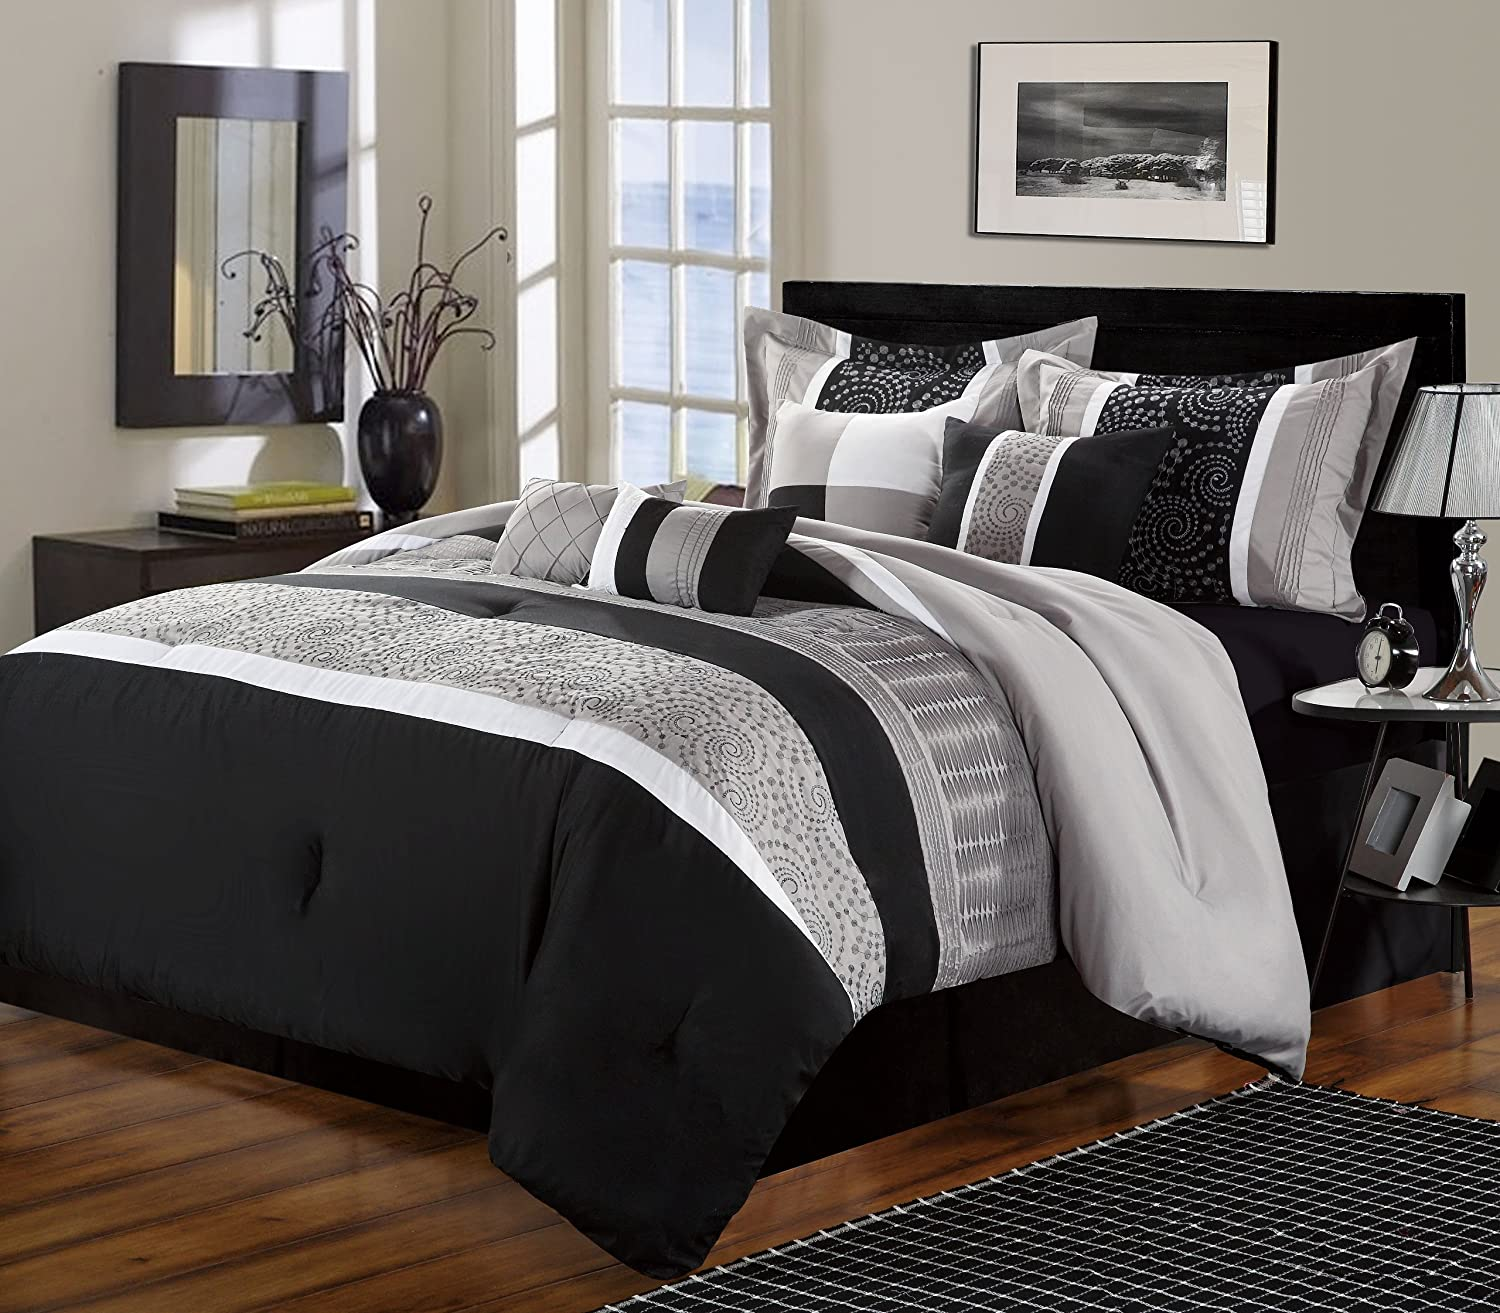 purple image comforter awesome of bedding grey set dark lostcoastshuttle twin